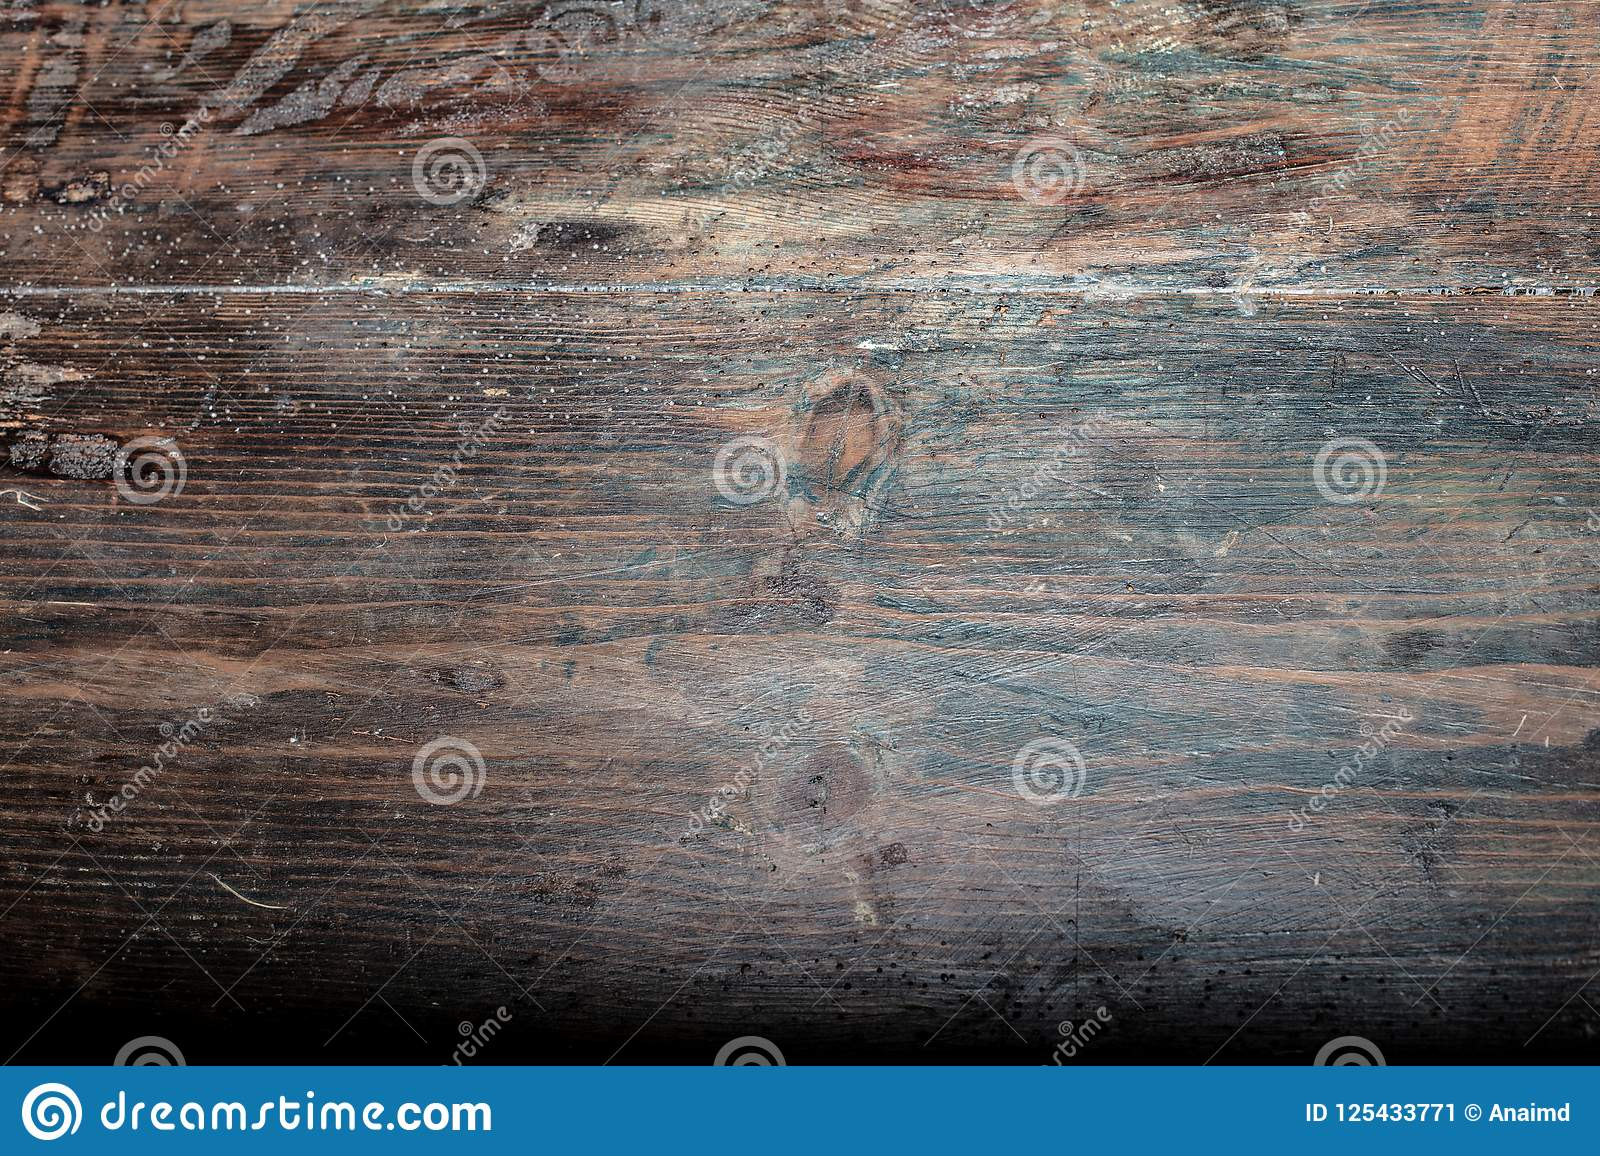 Grunge Wooden Texture For Creative Background Full Frame High Resolution Image